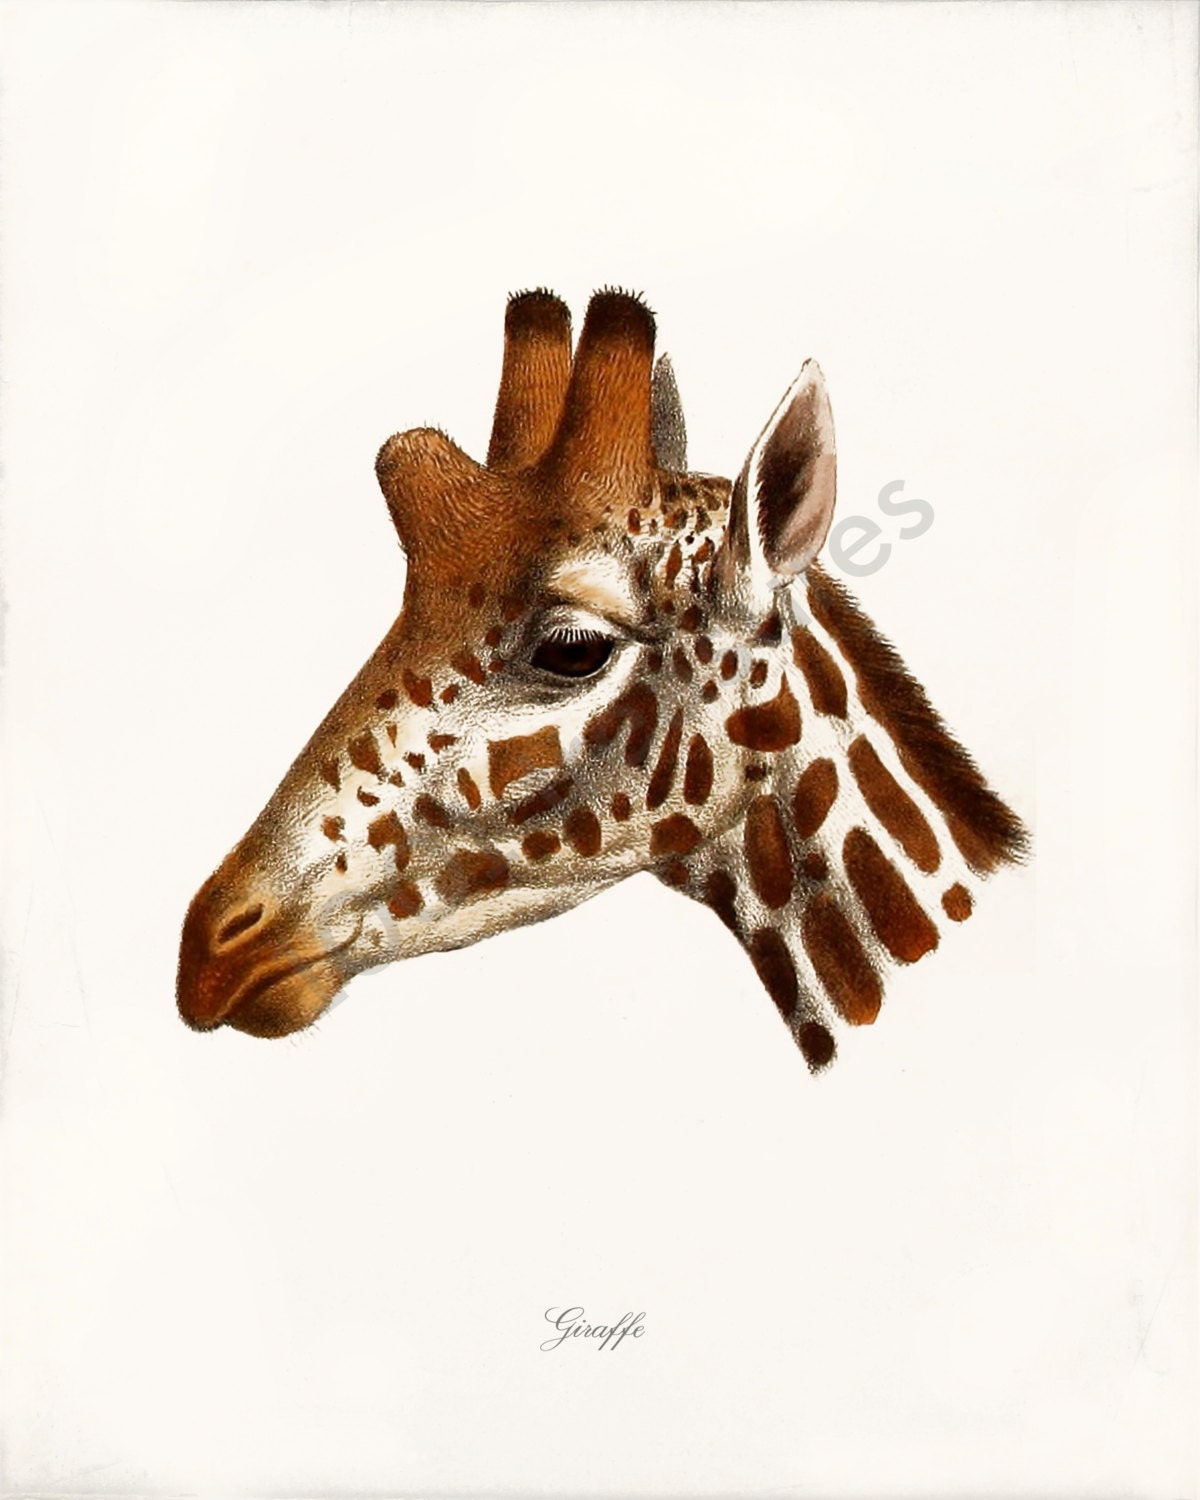 Antique Giraffe Art Print Giraffe A Home Decor Wall Art